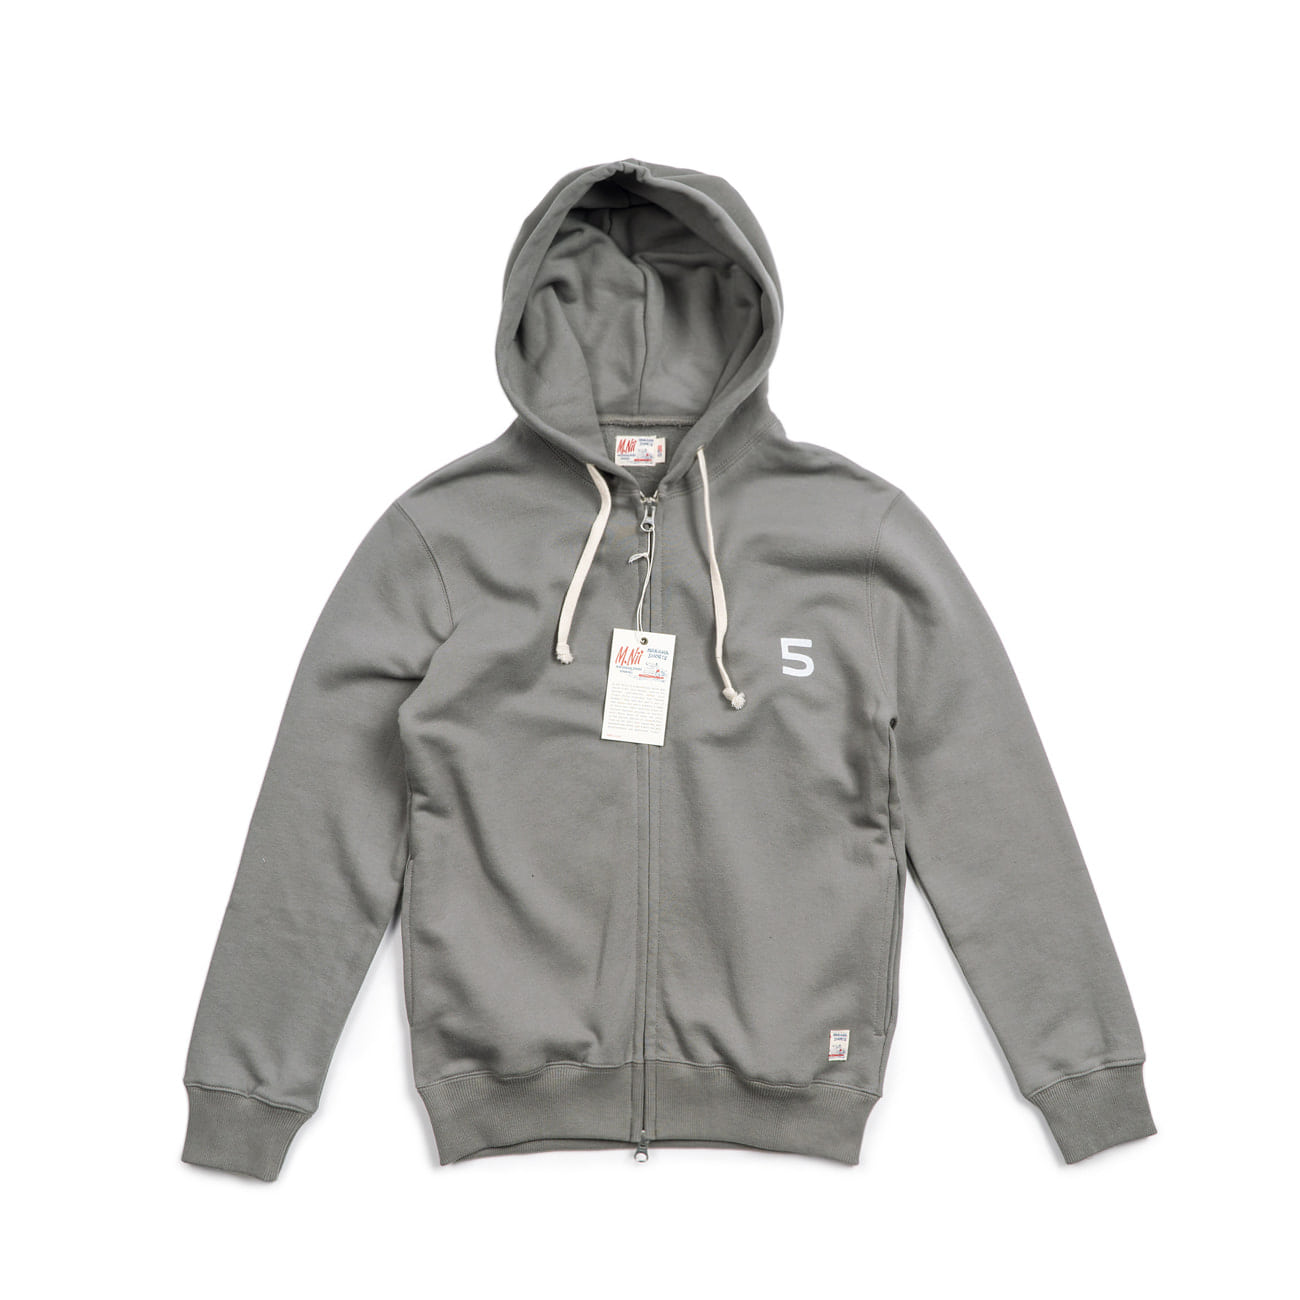 HiFive 2 Way Zip up Hood  Grey